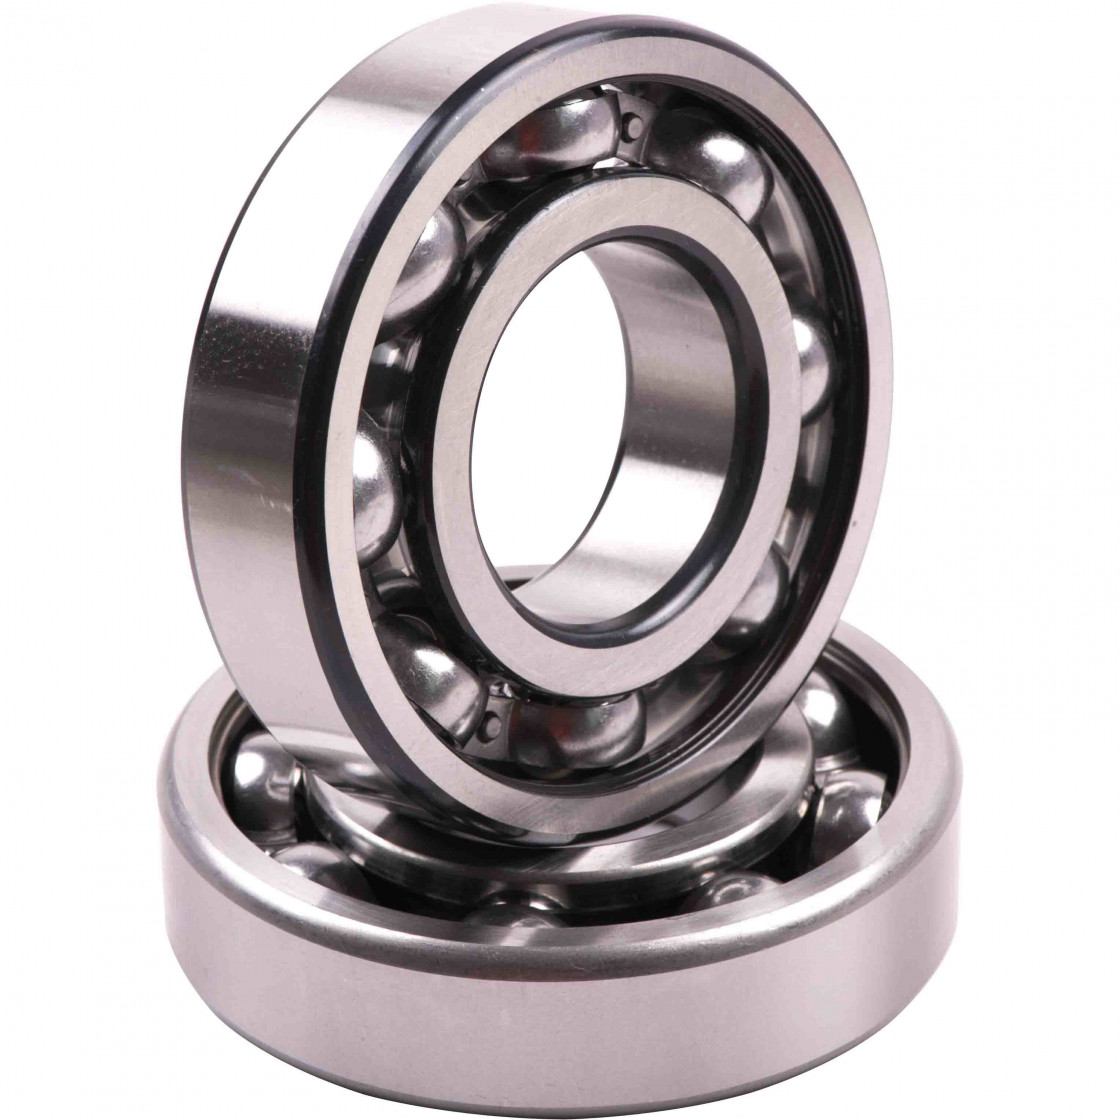 The difference between deep groove ball bearings and angular contact ball bearings